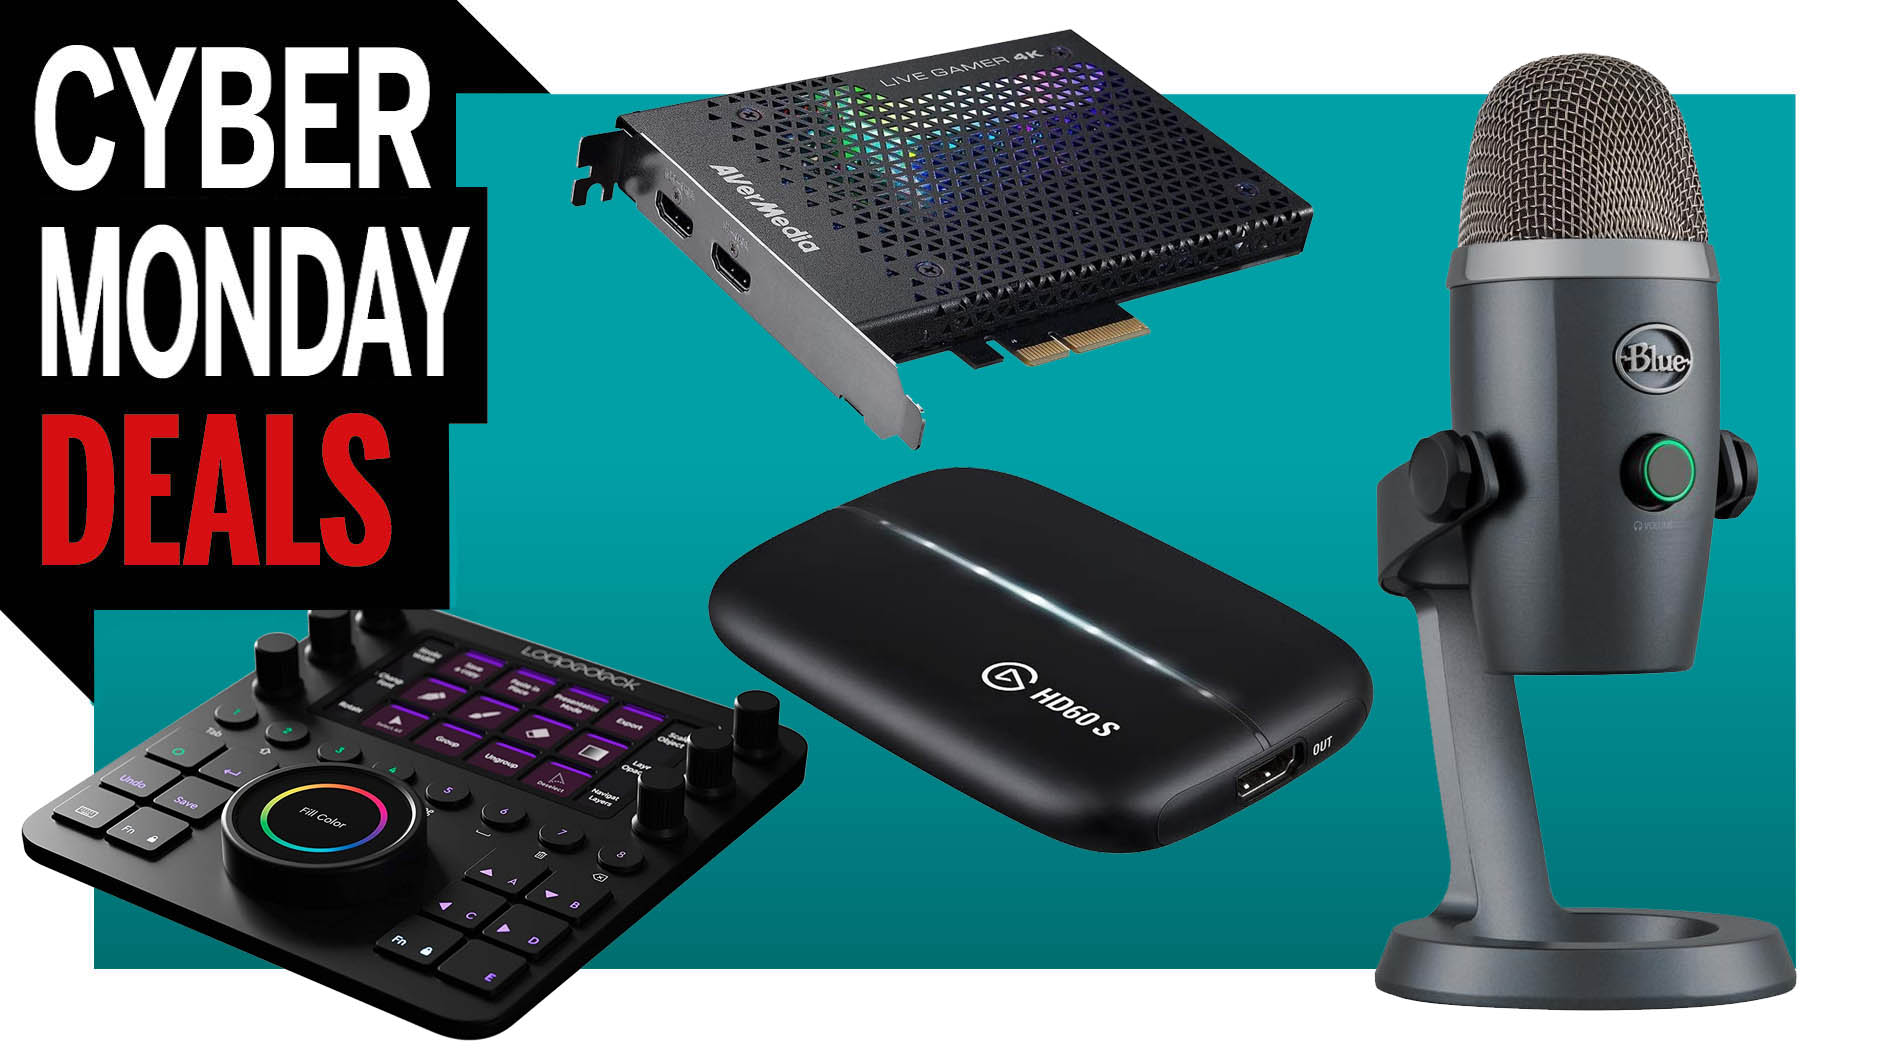 The best Cyber Monday deals for streamers and content creators